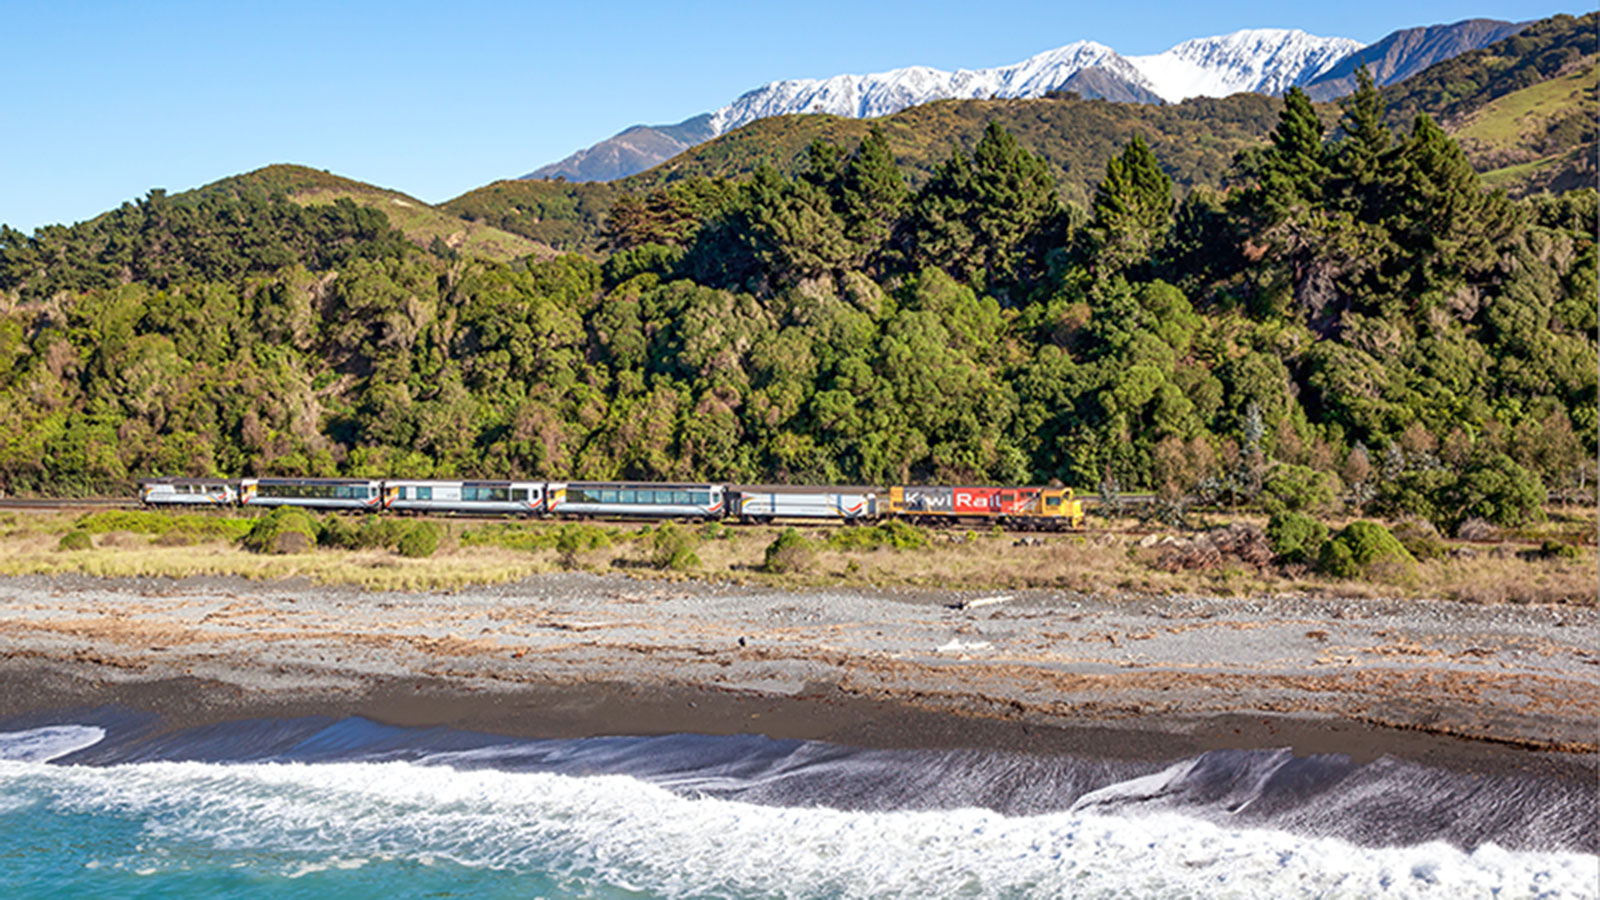 Coastal Pacific Train Official The Great Journeys Of New